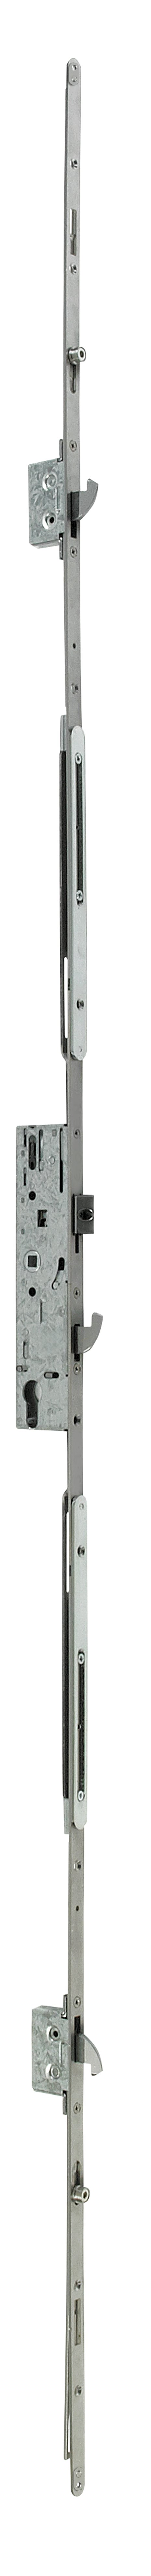 Adjustable Replacement Lock for PVCu doors